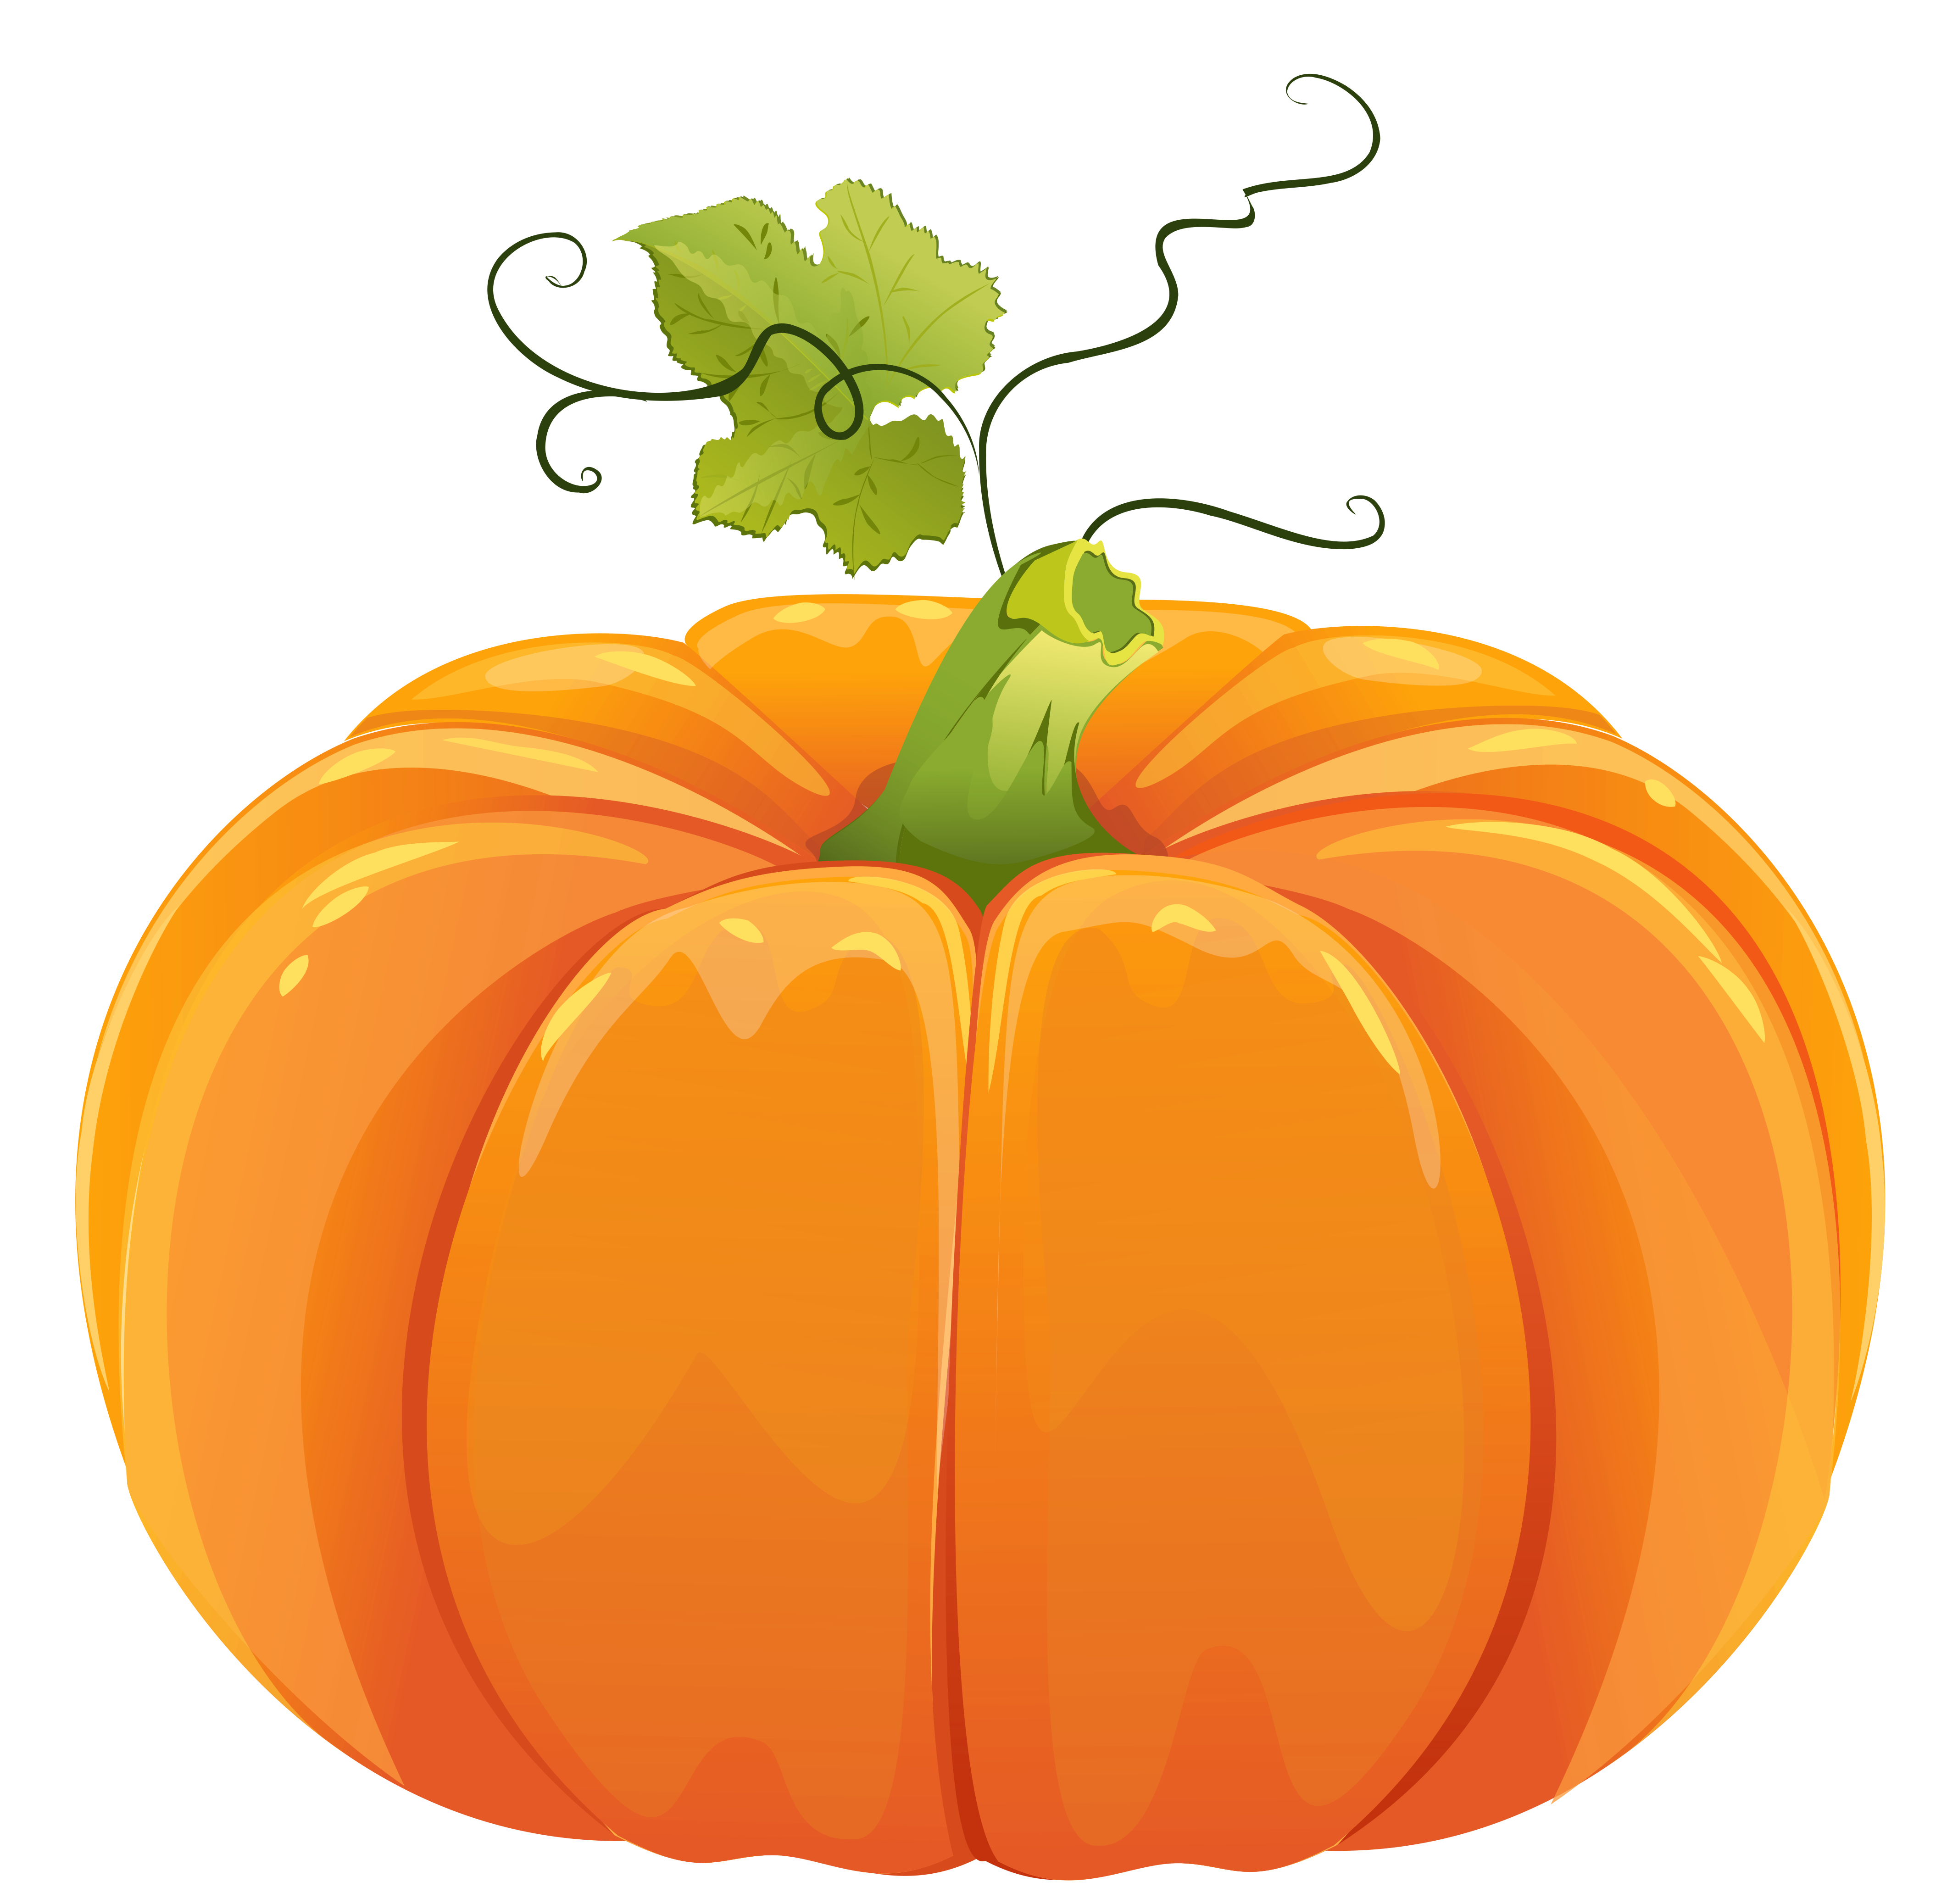 Religious pumpkin clipart free picture transparent download Autumn pumpkin clipart | Work | Pinterest | Pumpkin png, Clip art ... picture transparent download